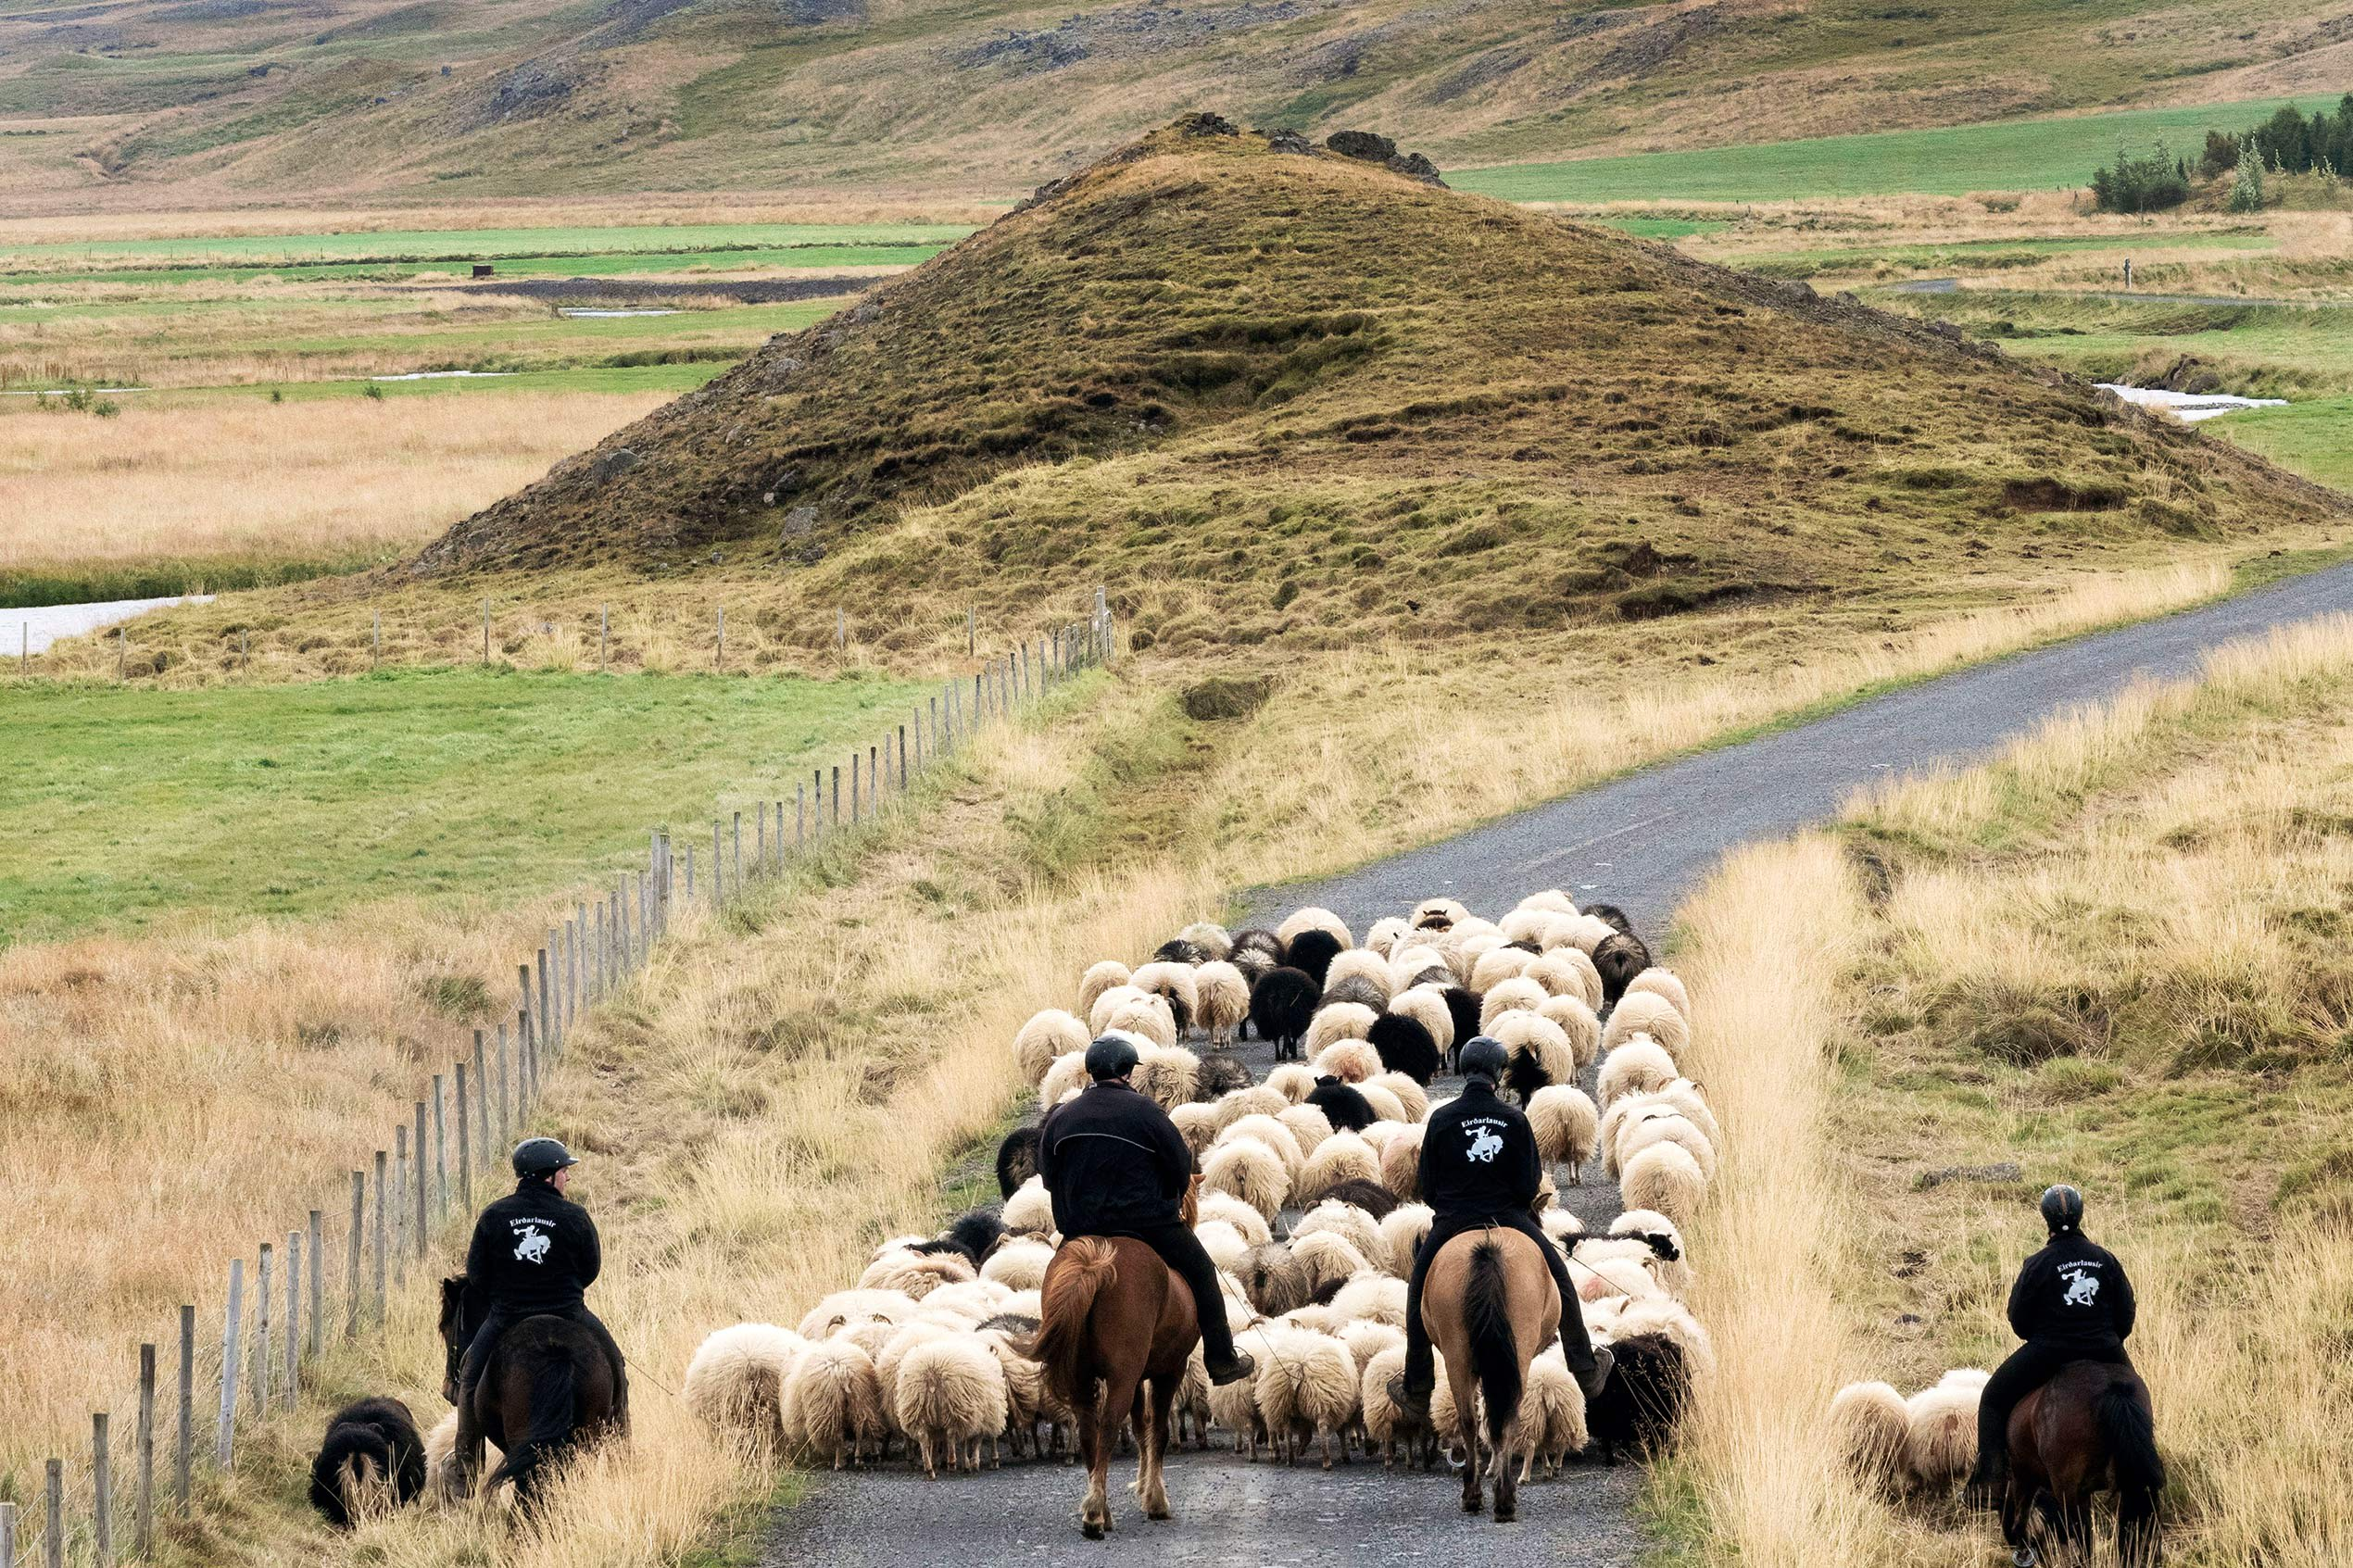 a view from behind of four people on horses rounding up a flock of sheep